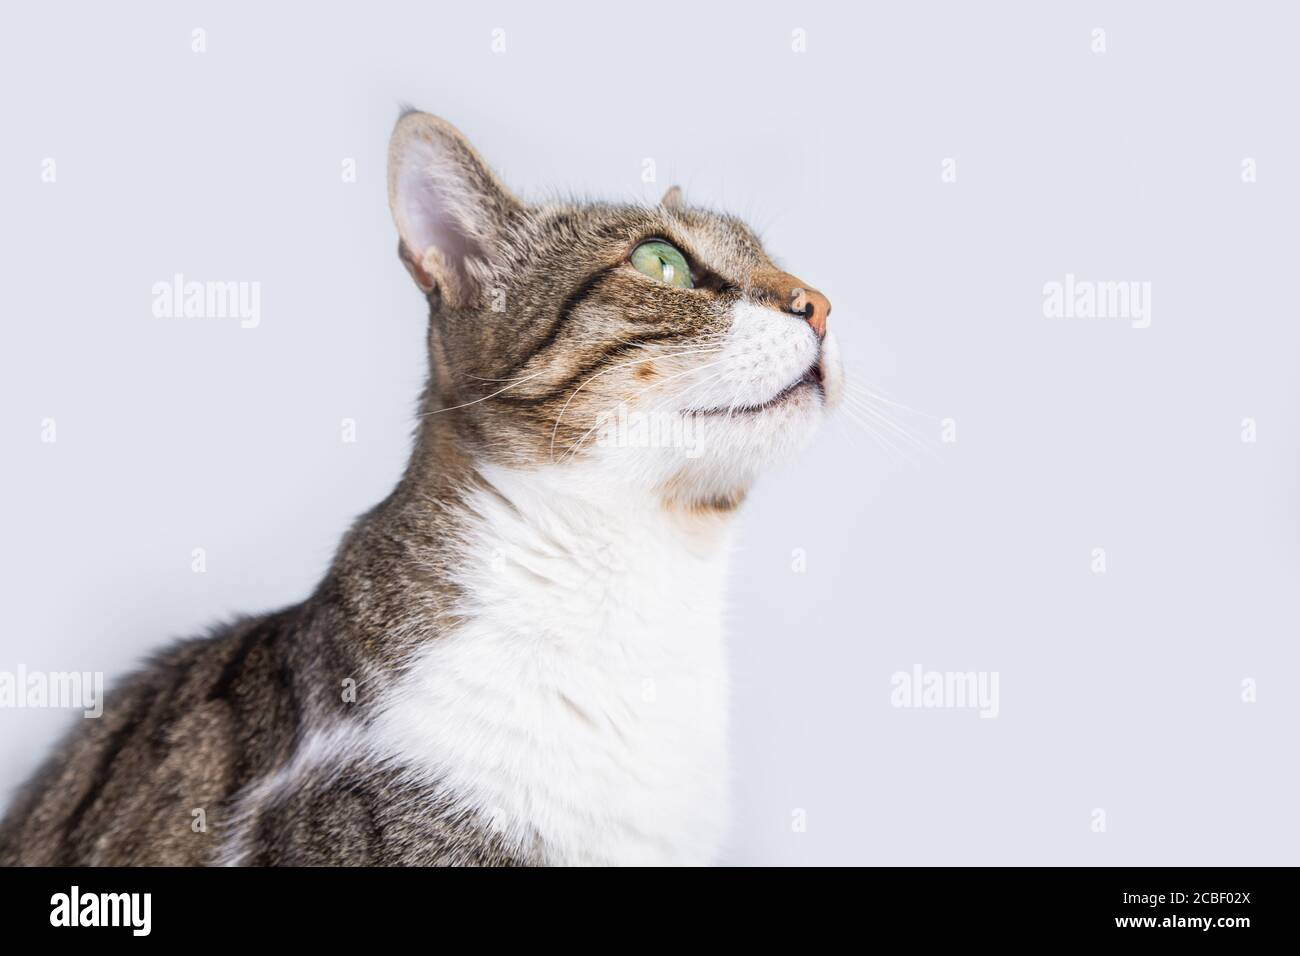 Cat sitting and looking up  isolated on white background. Stock Photo